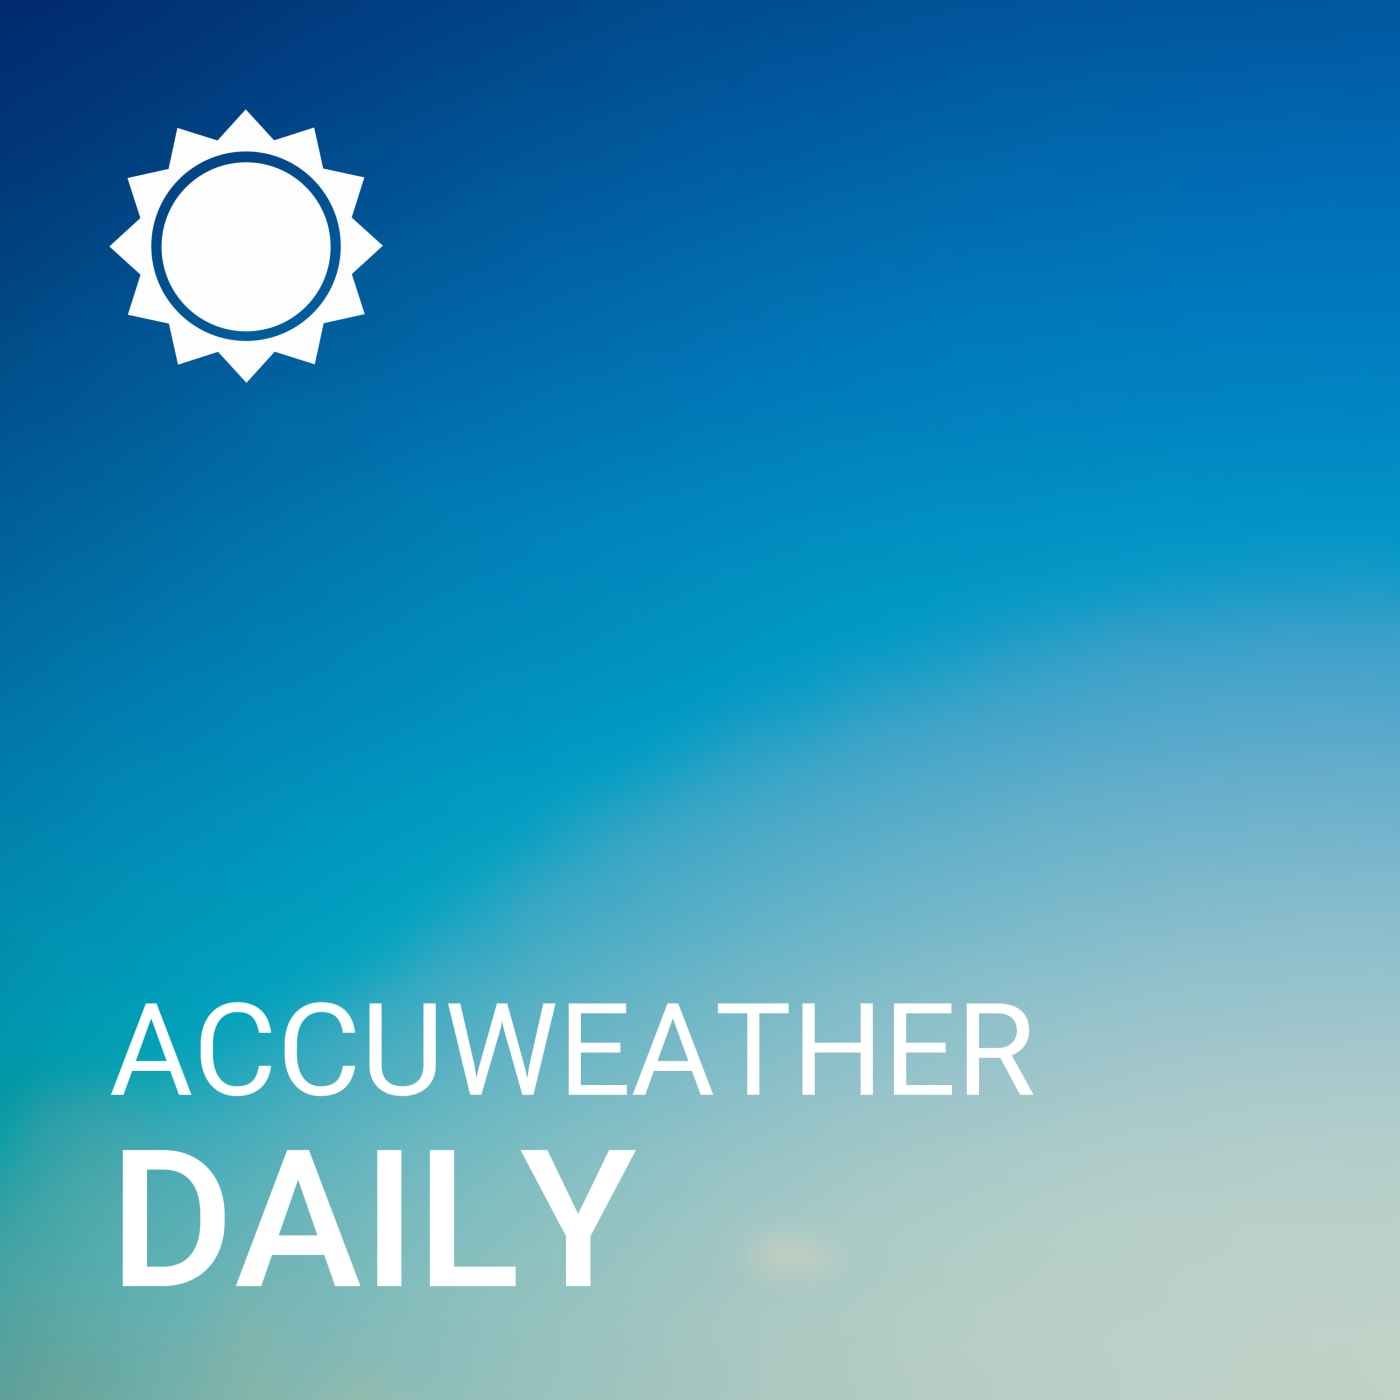 AccuWeather Daily logo